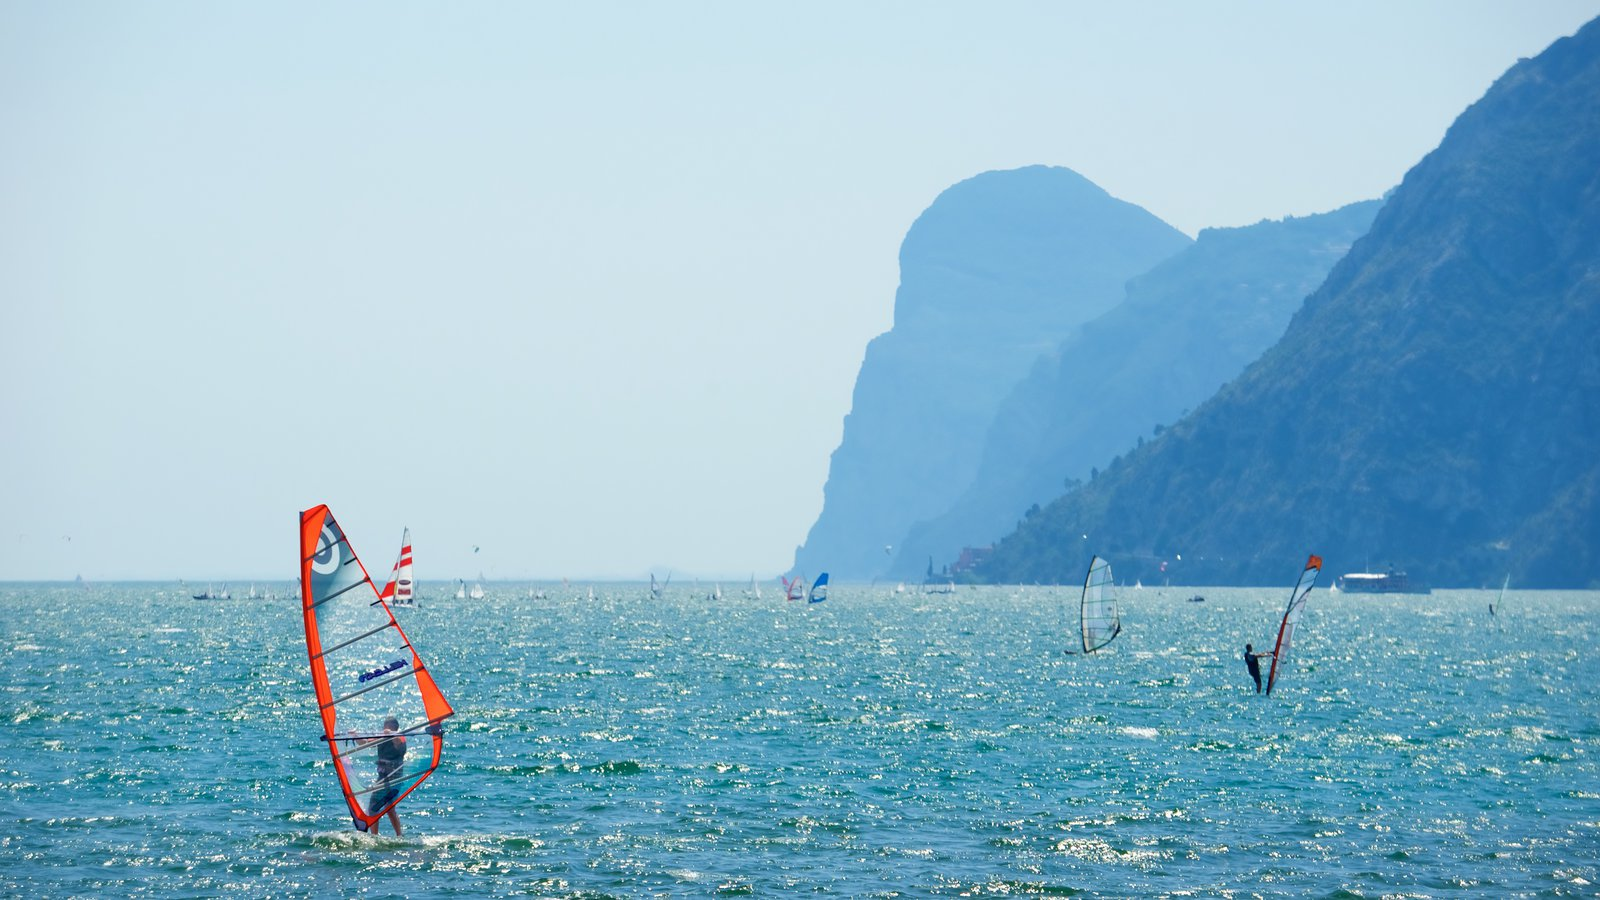 Nago-Torbole which includes windsurfing, general coastal views and mountains